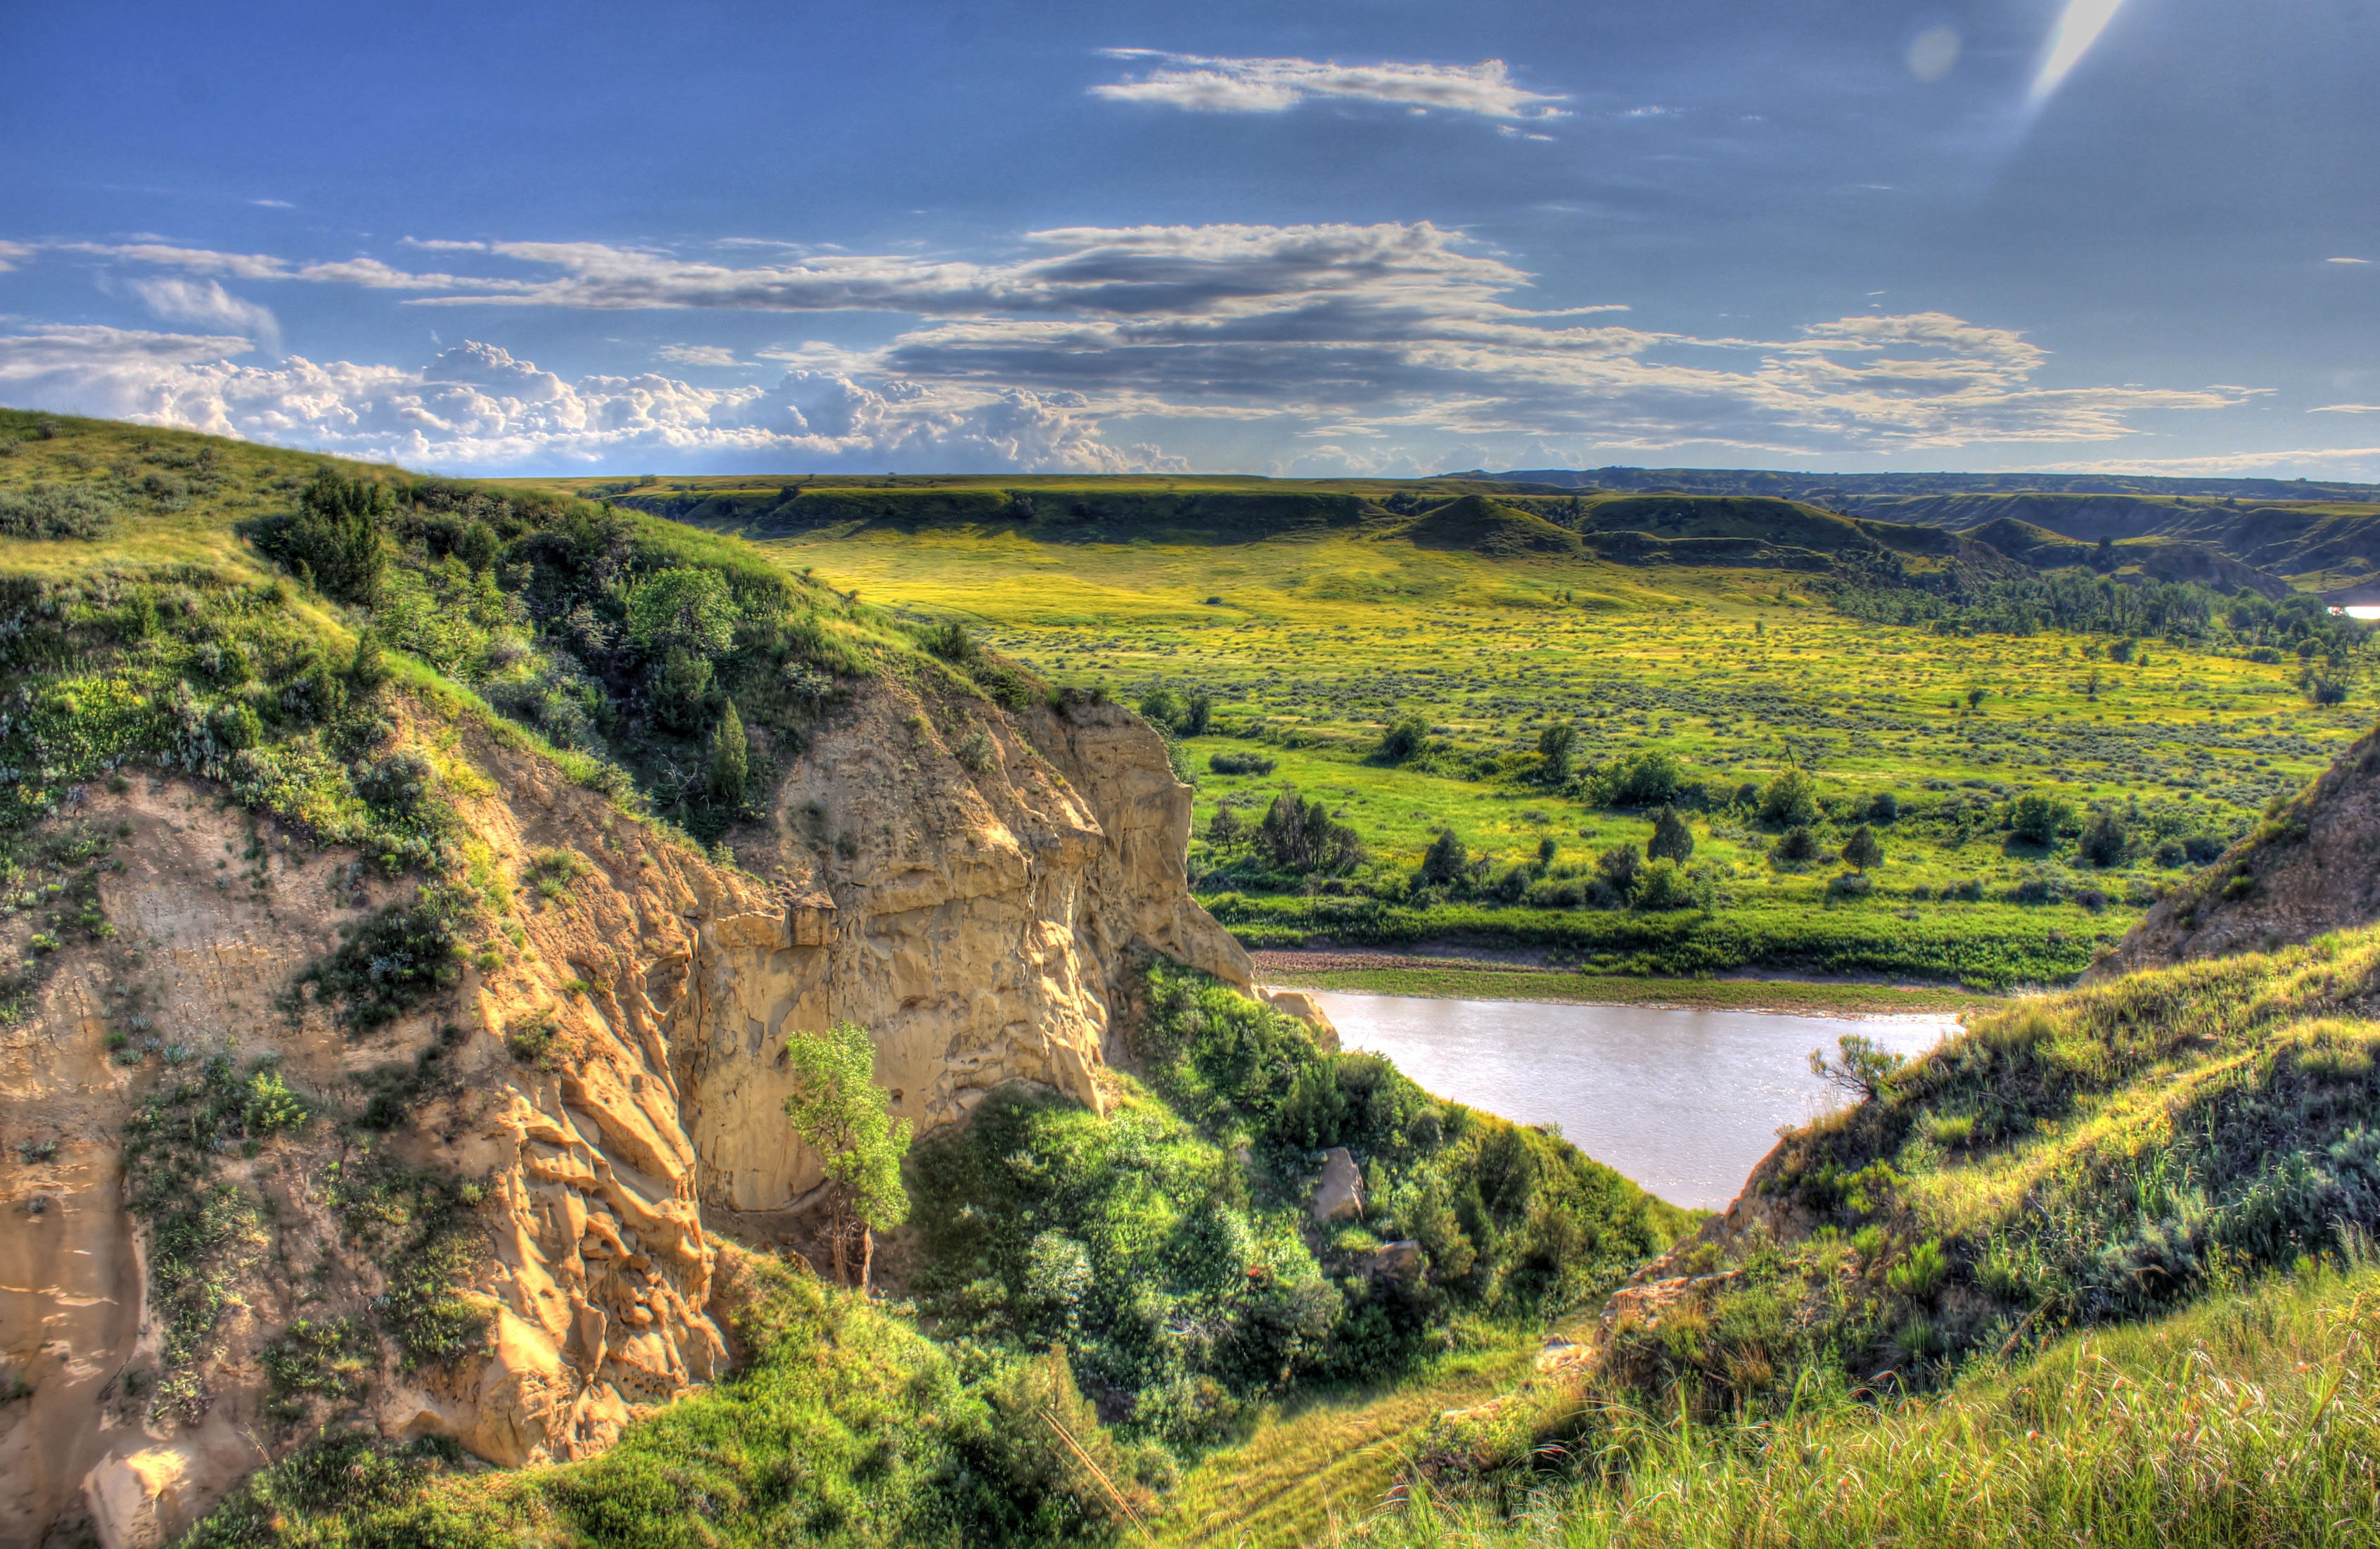 Landscape across the river at Theodore Roosevelt National Park.